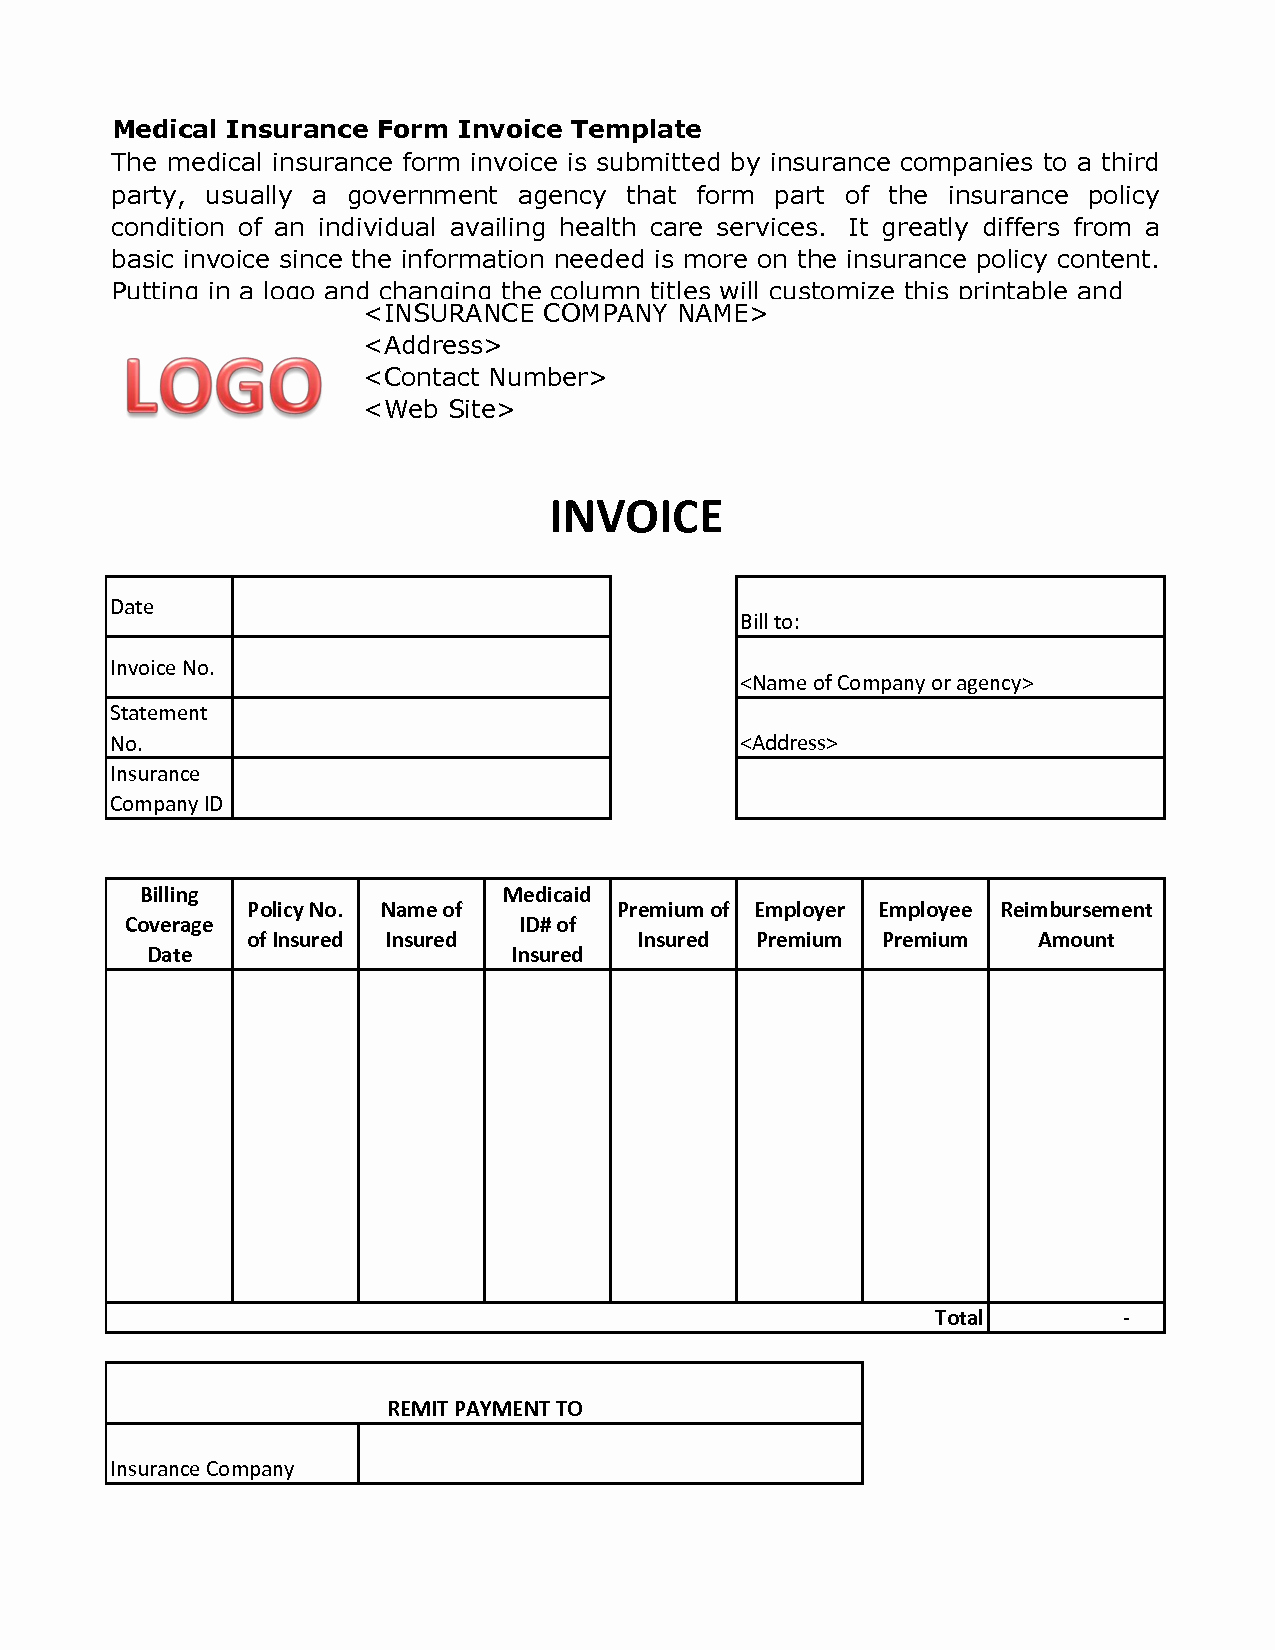 Medical Bill Template Pdf Inspirational Medical Billing Invoice Template Free Medical Invoice